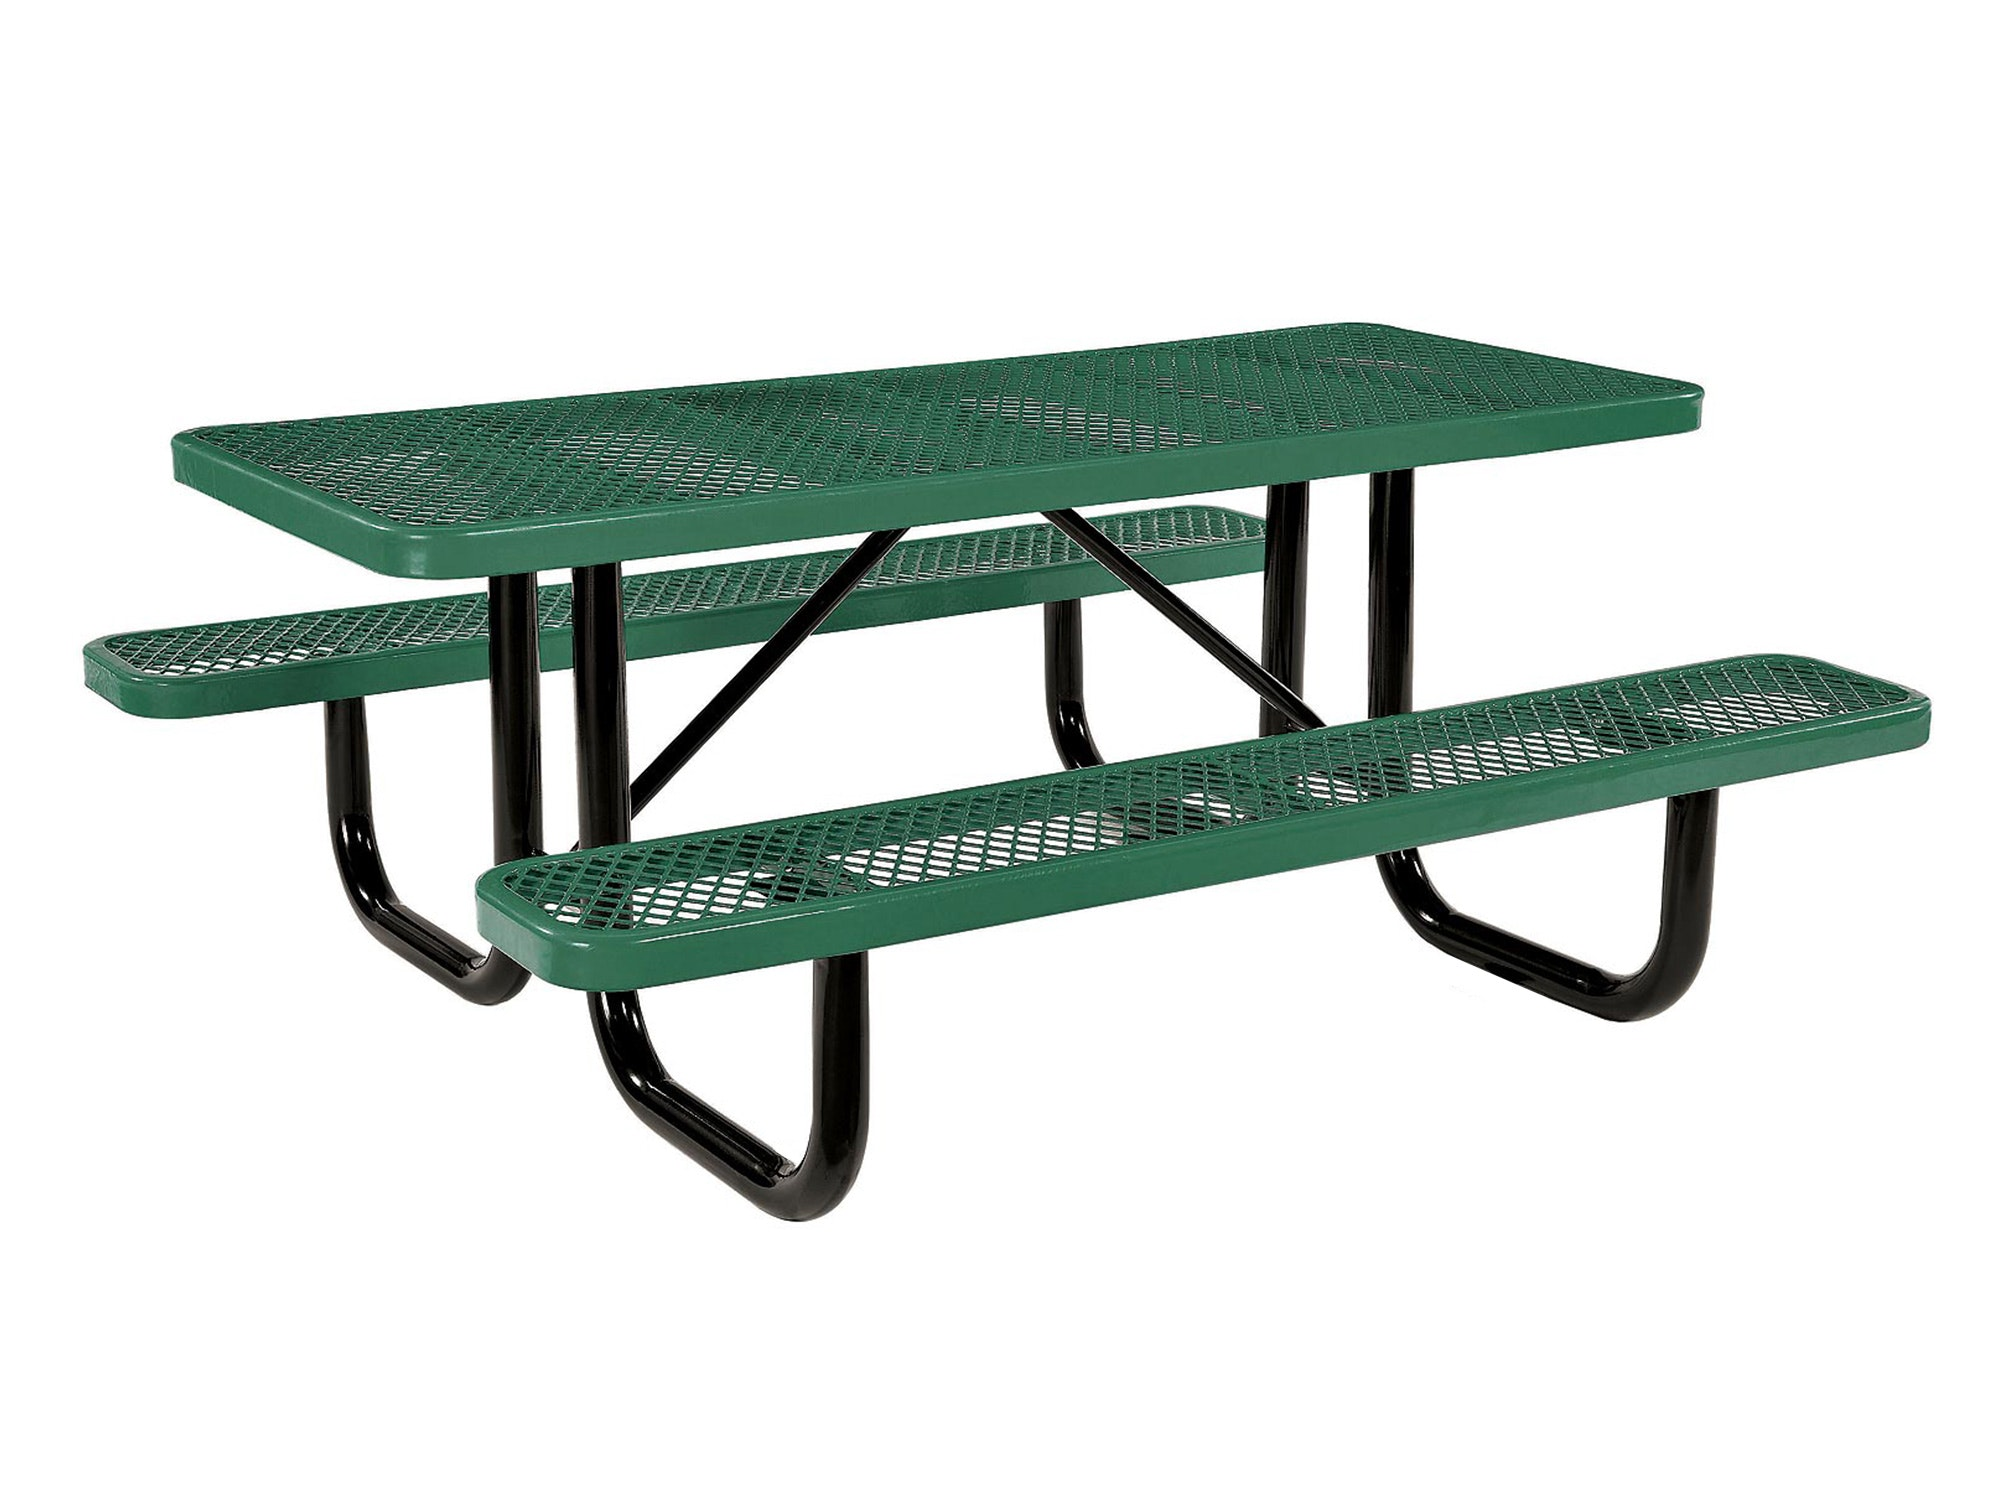 Picnic Table 6 Seater - Green